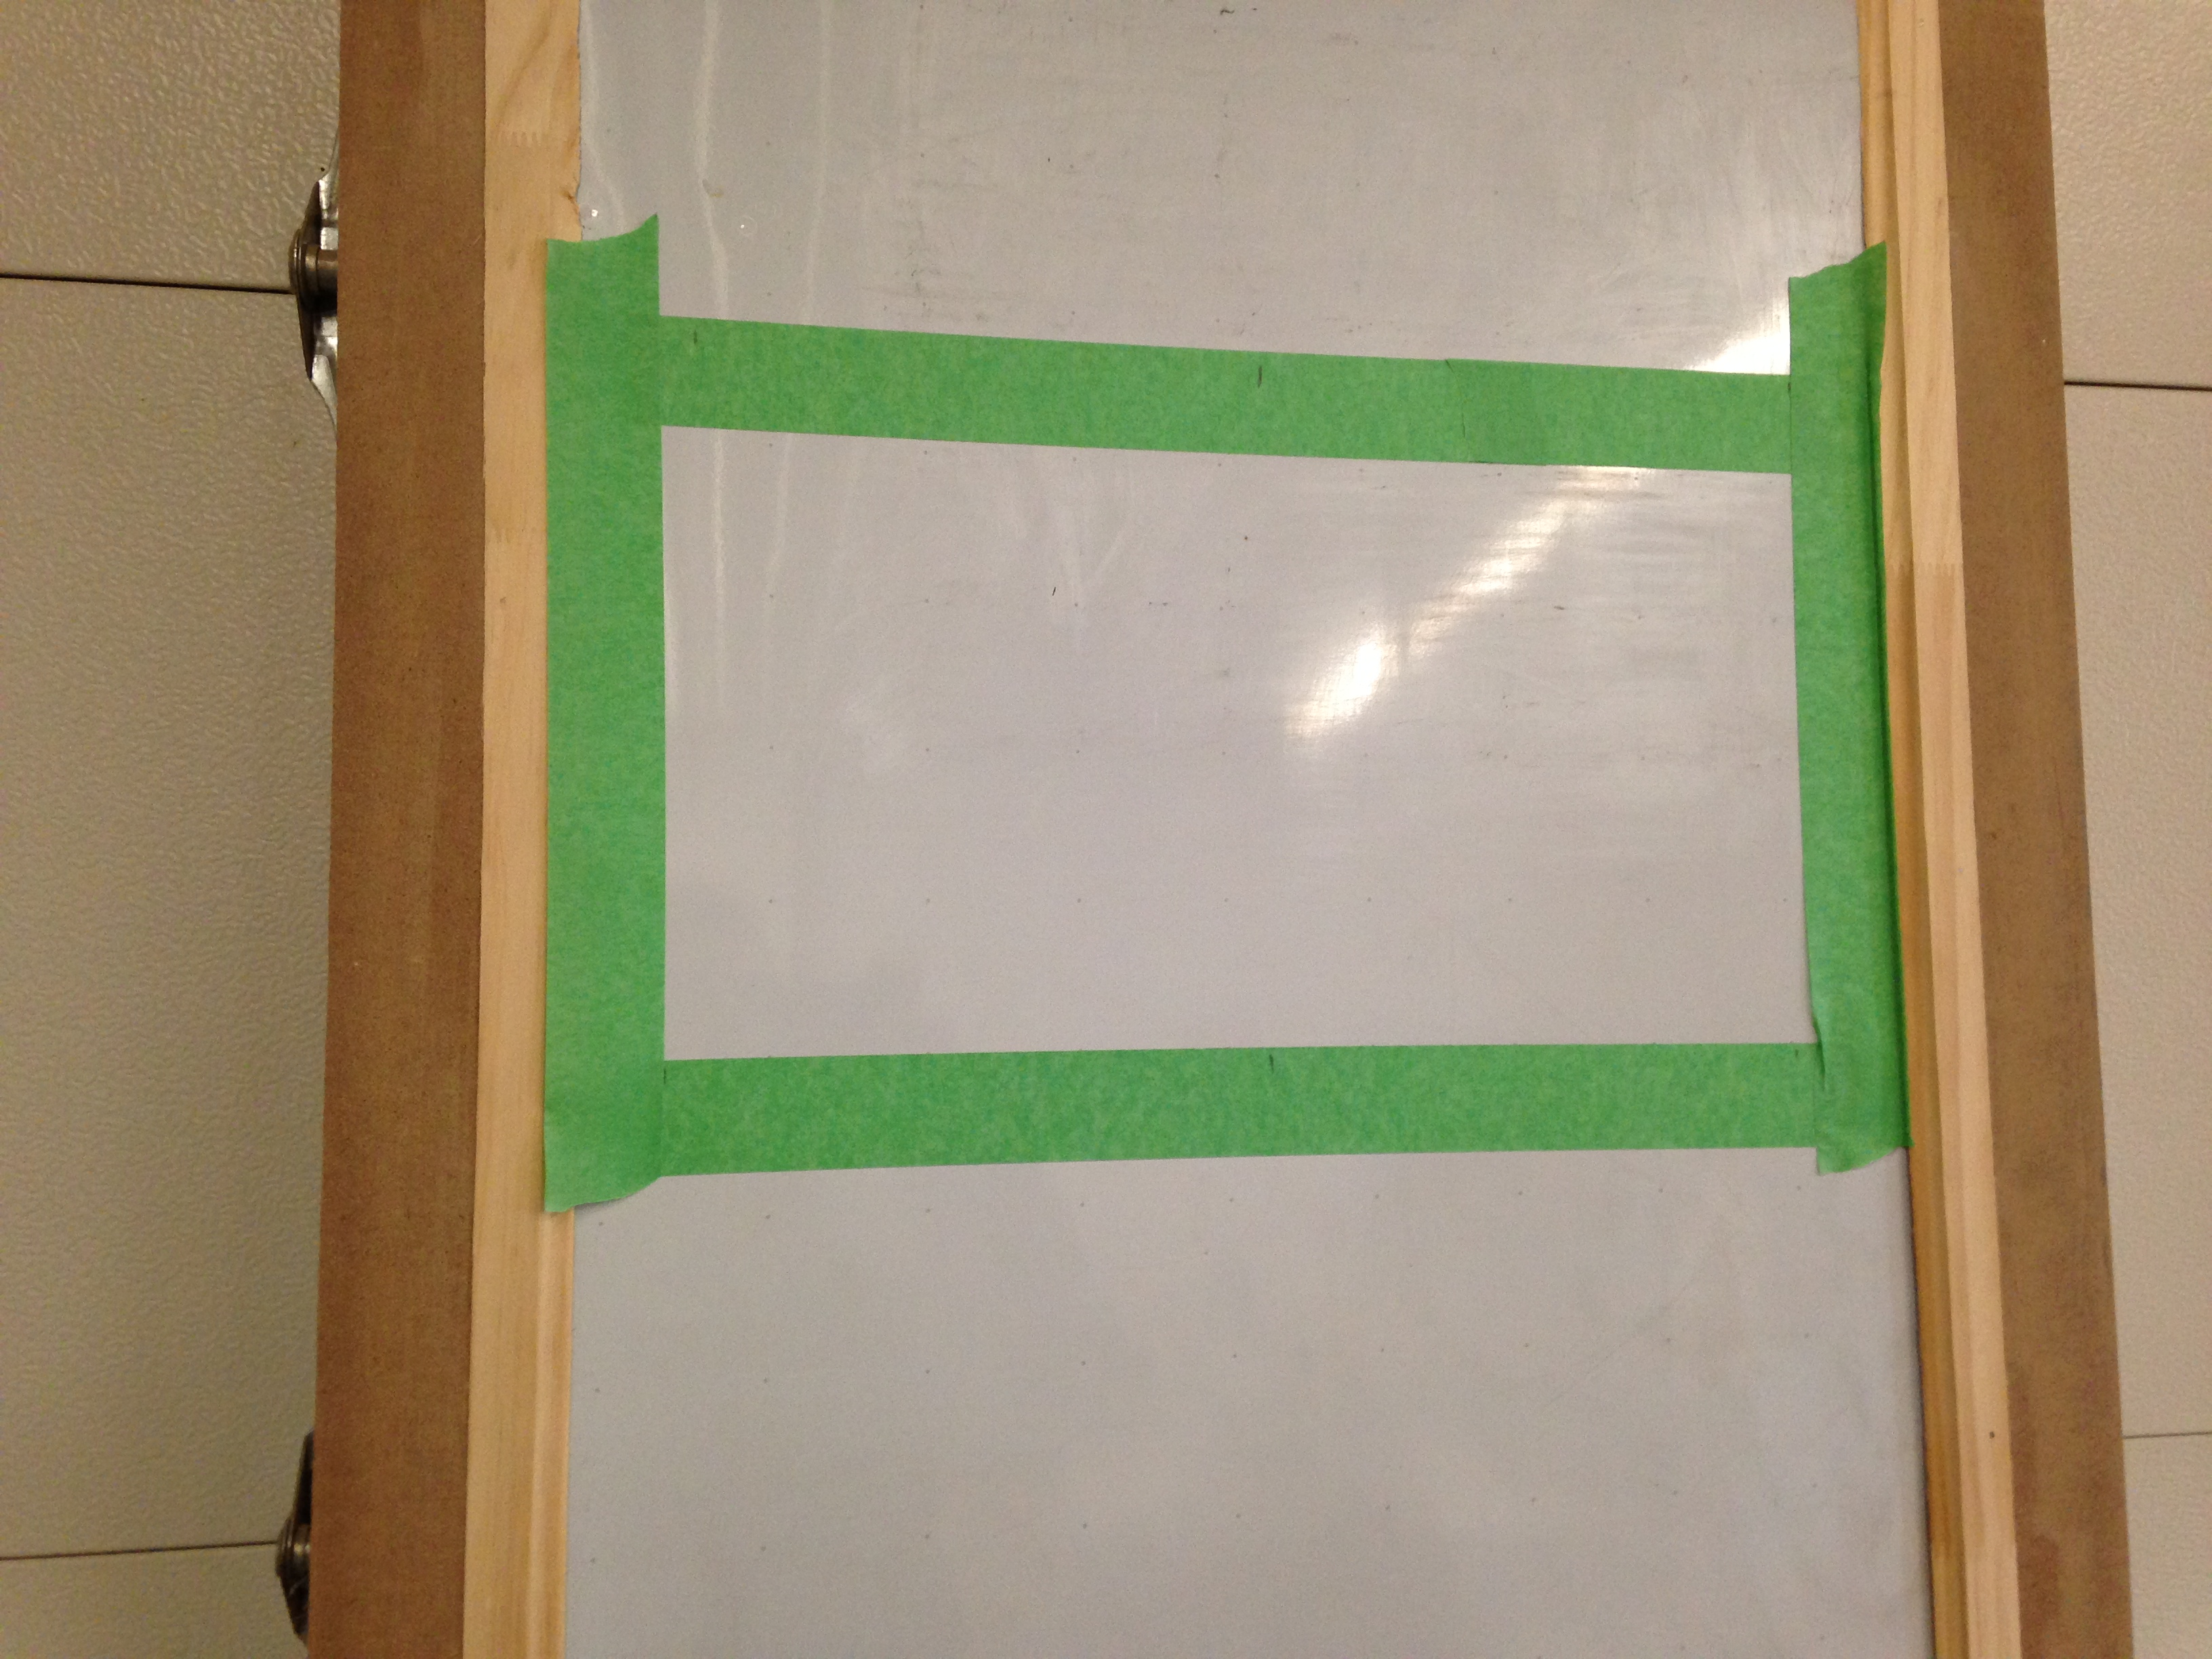 Picture of Door Assembly (dry Erase Board/buttons)